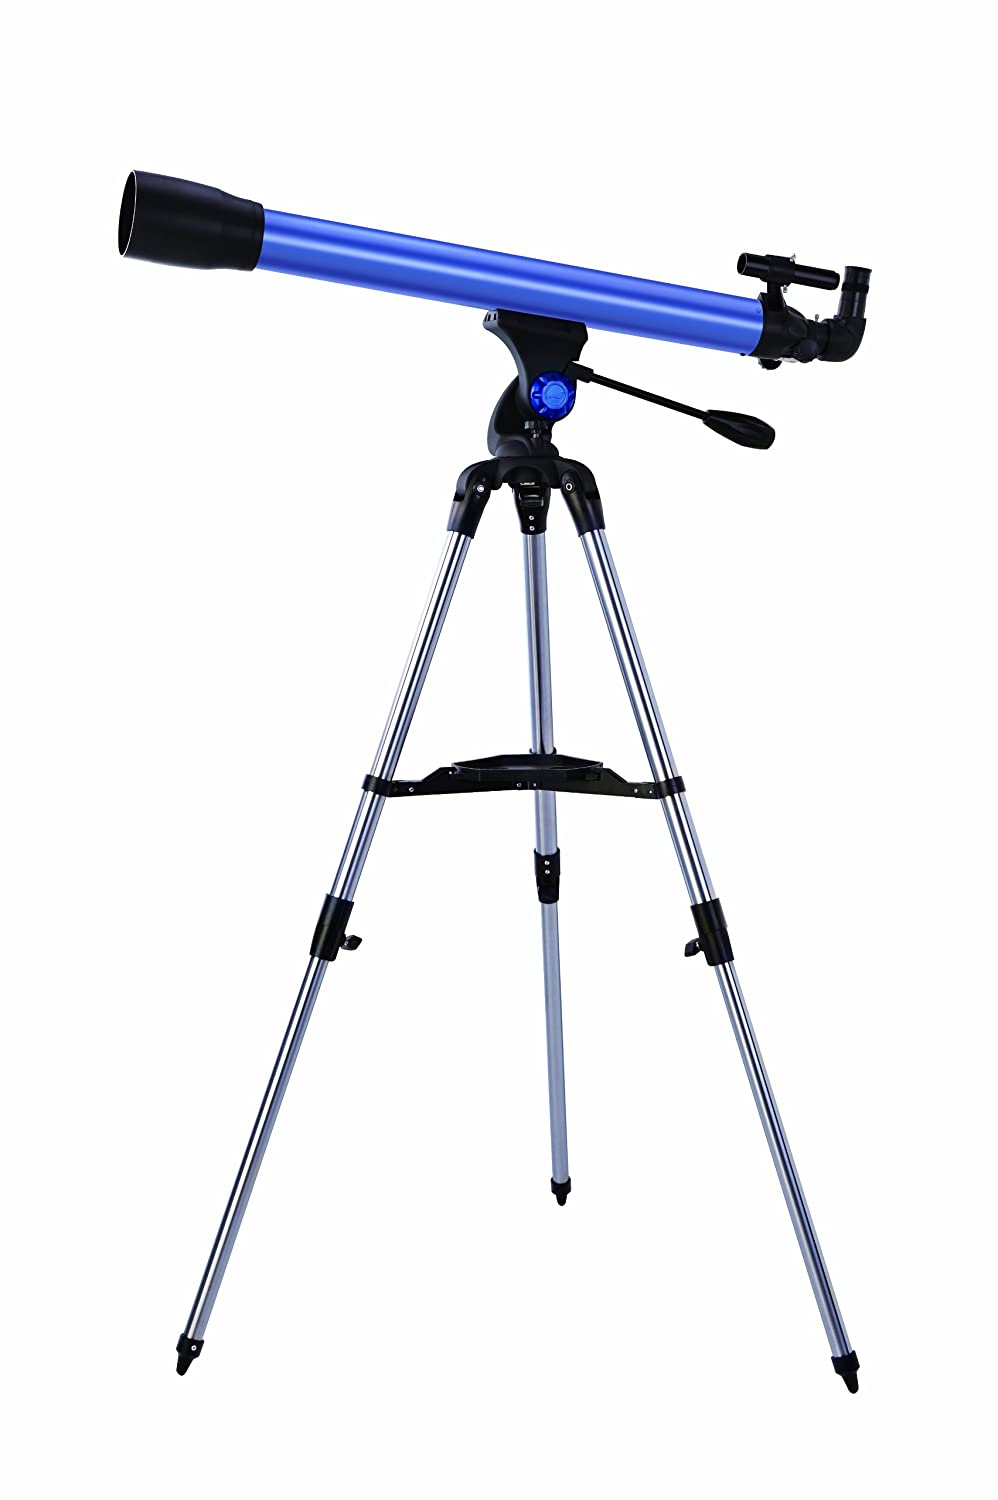 Best Telescopes For Kids: Top 10 Reviewed – Family Funtures